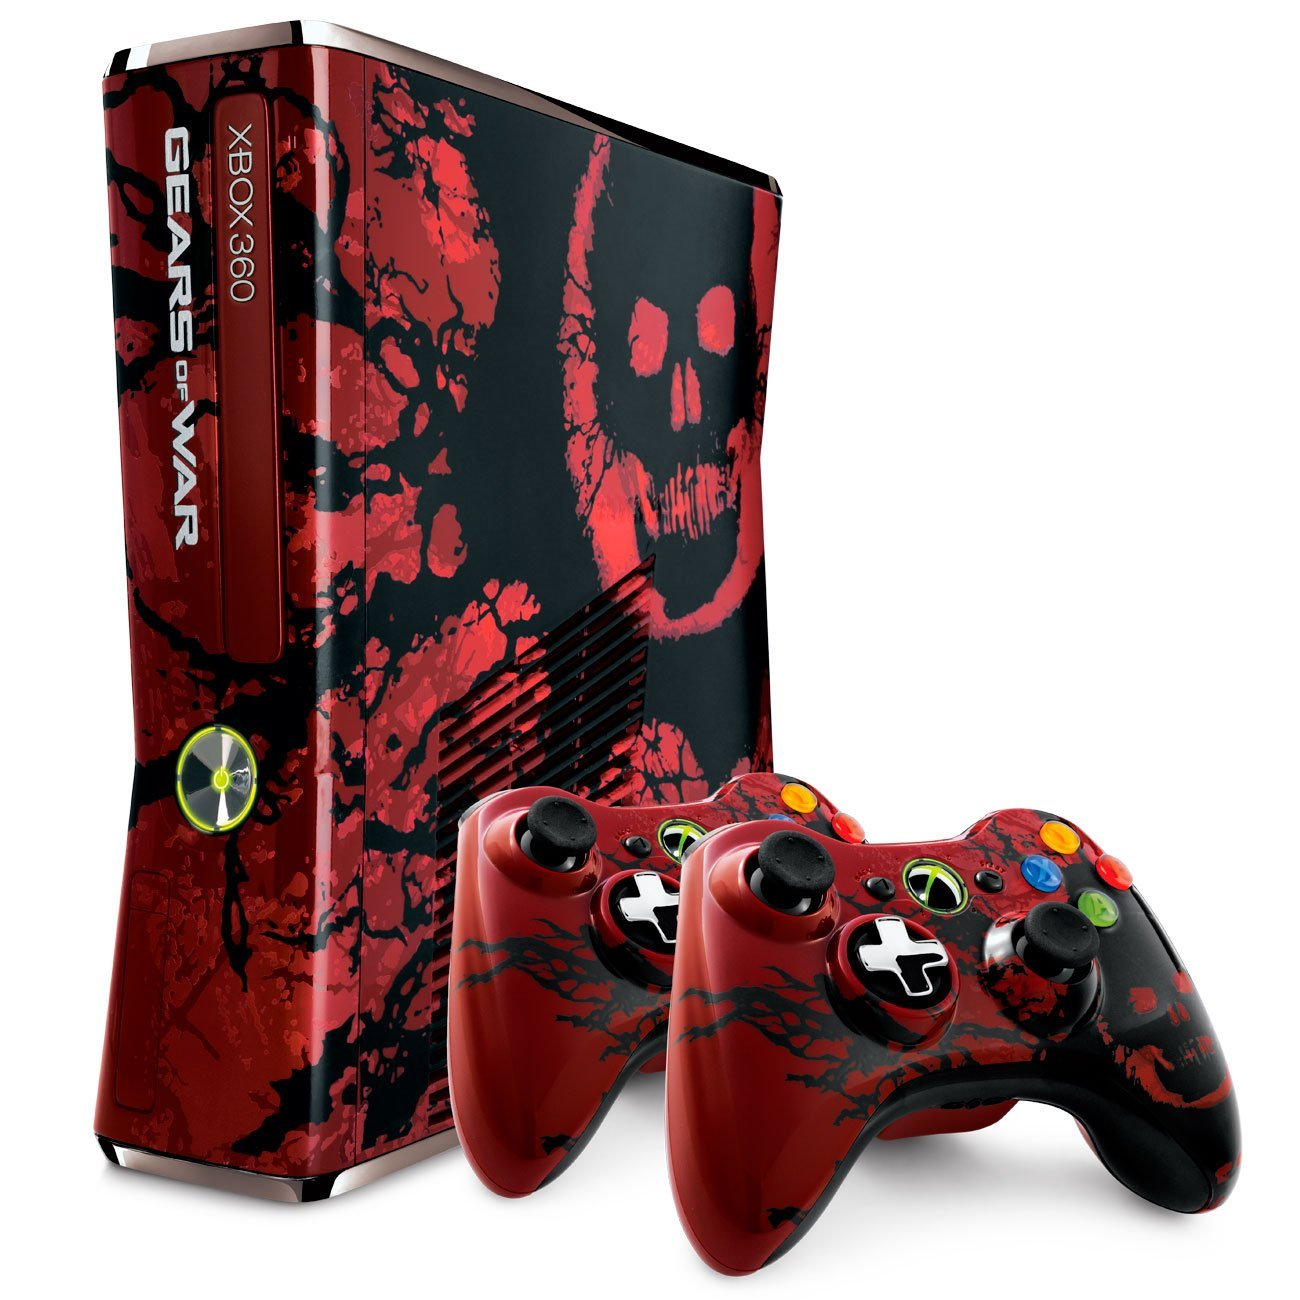 Gears of War Xbox 360 Edition